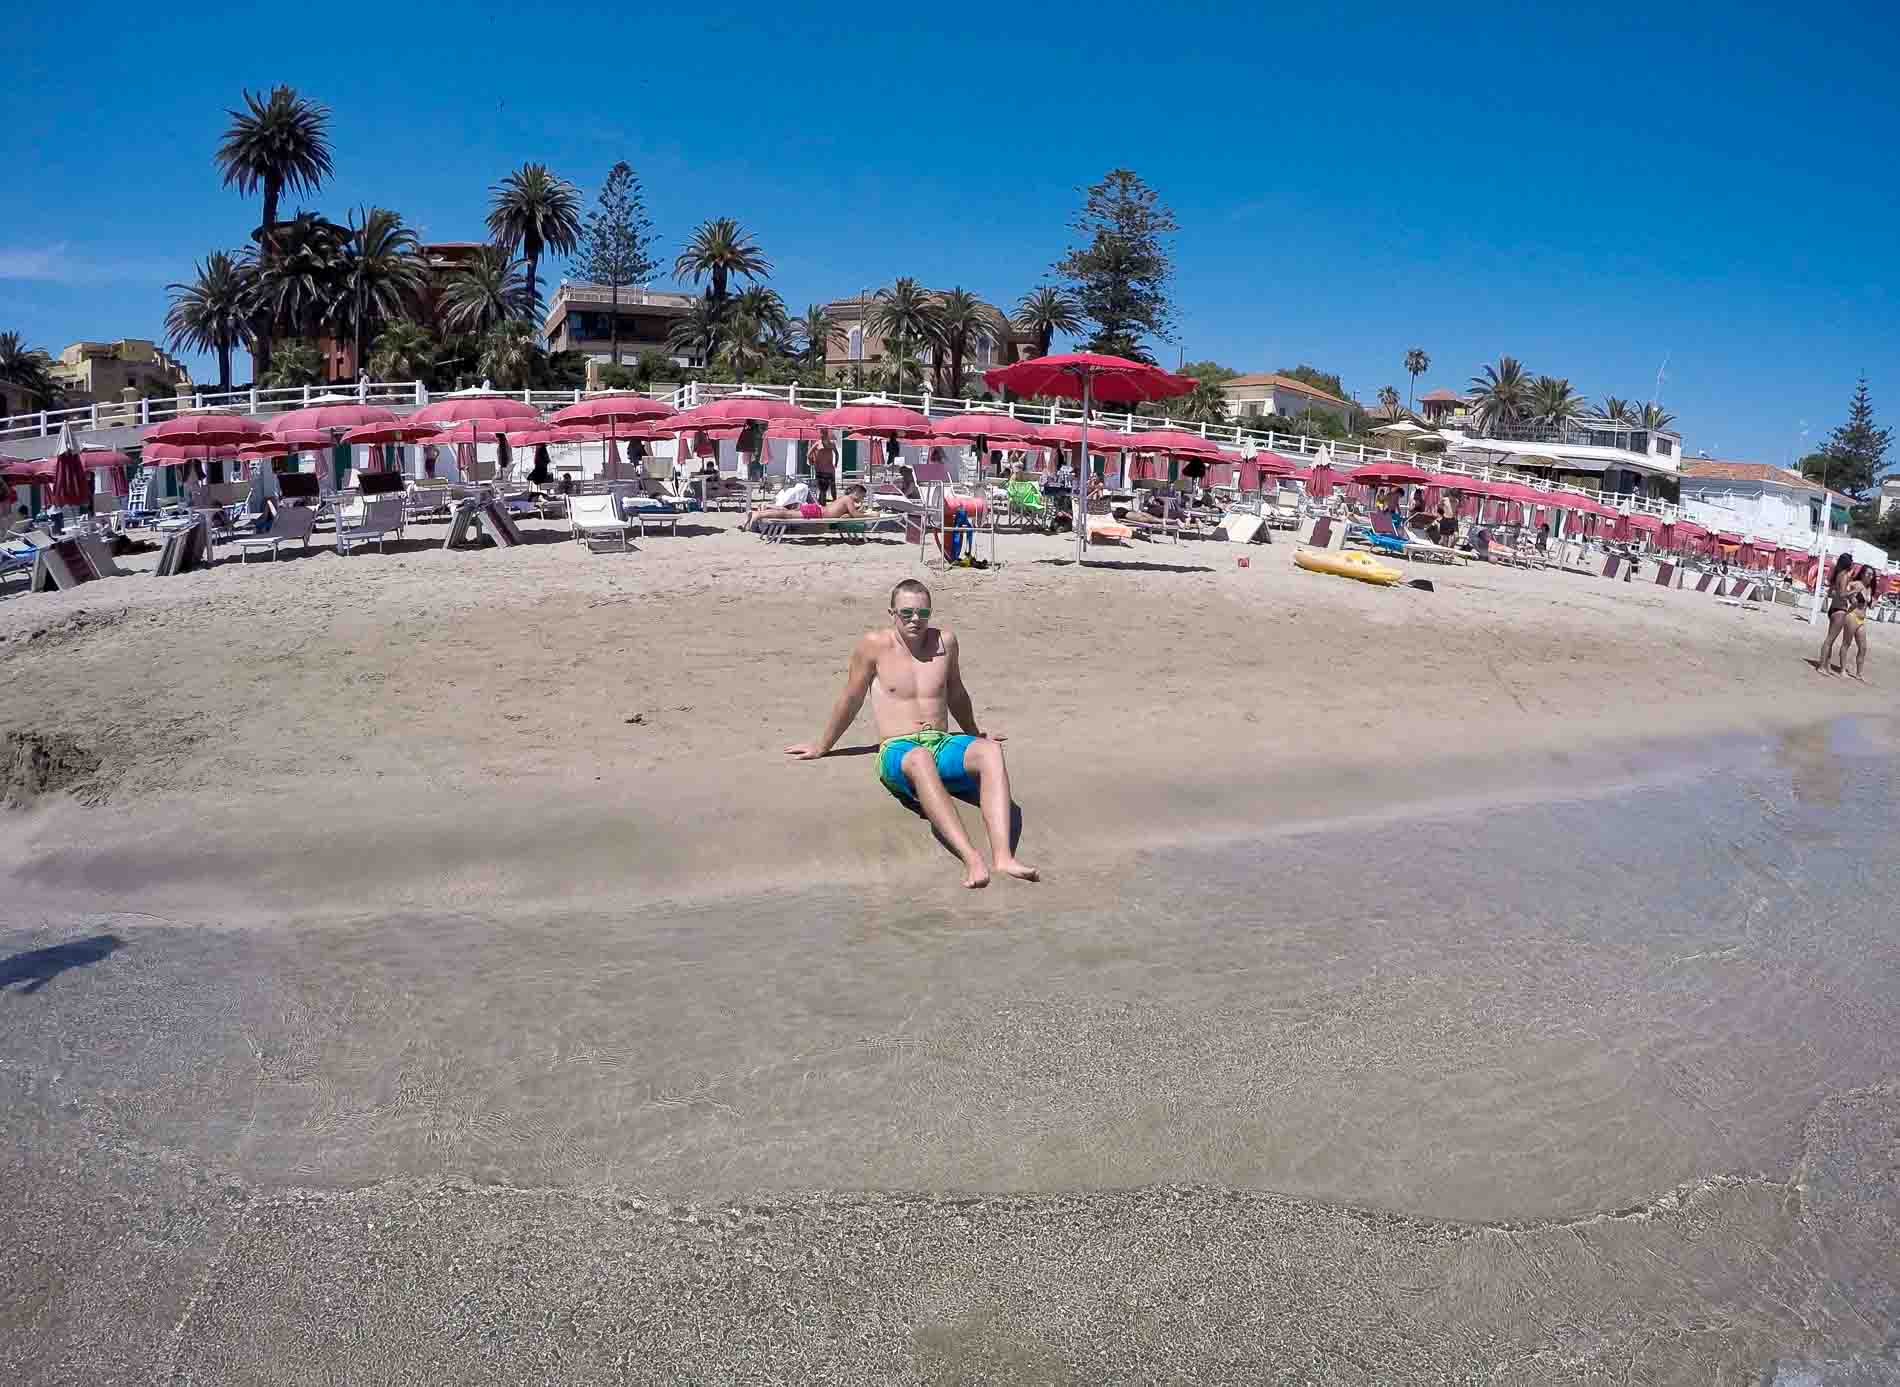 Santa Marinella The Perfect Day Trip To The Beach From Rome